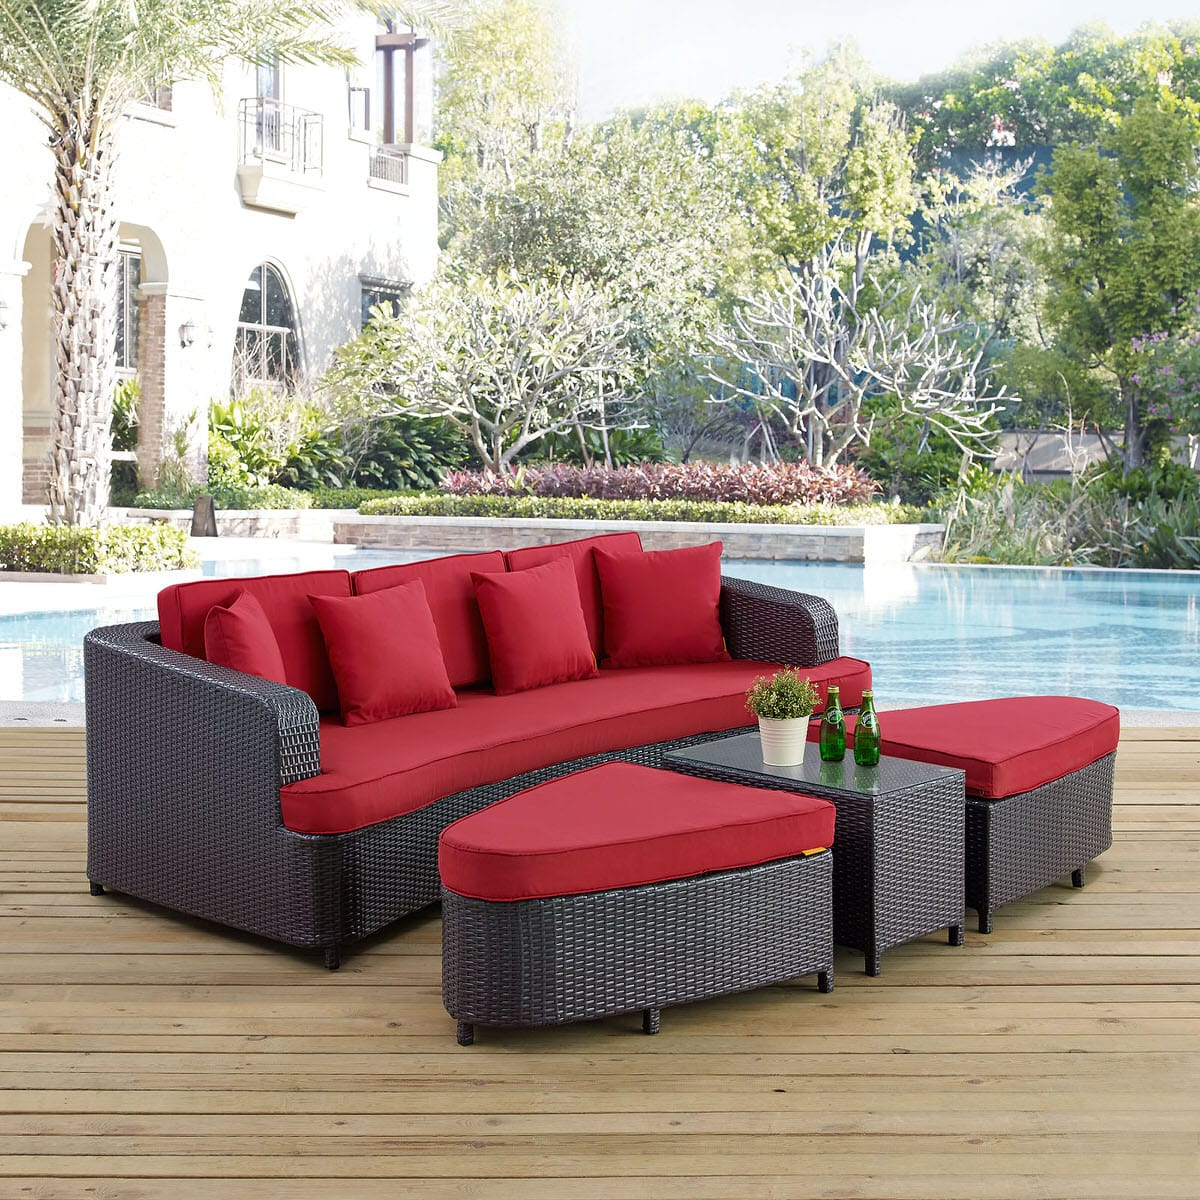 Monterey 4 Piece Outdoor Patio Sofa Set Brown Red by Modern Living